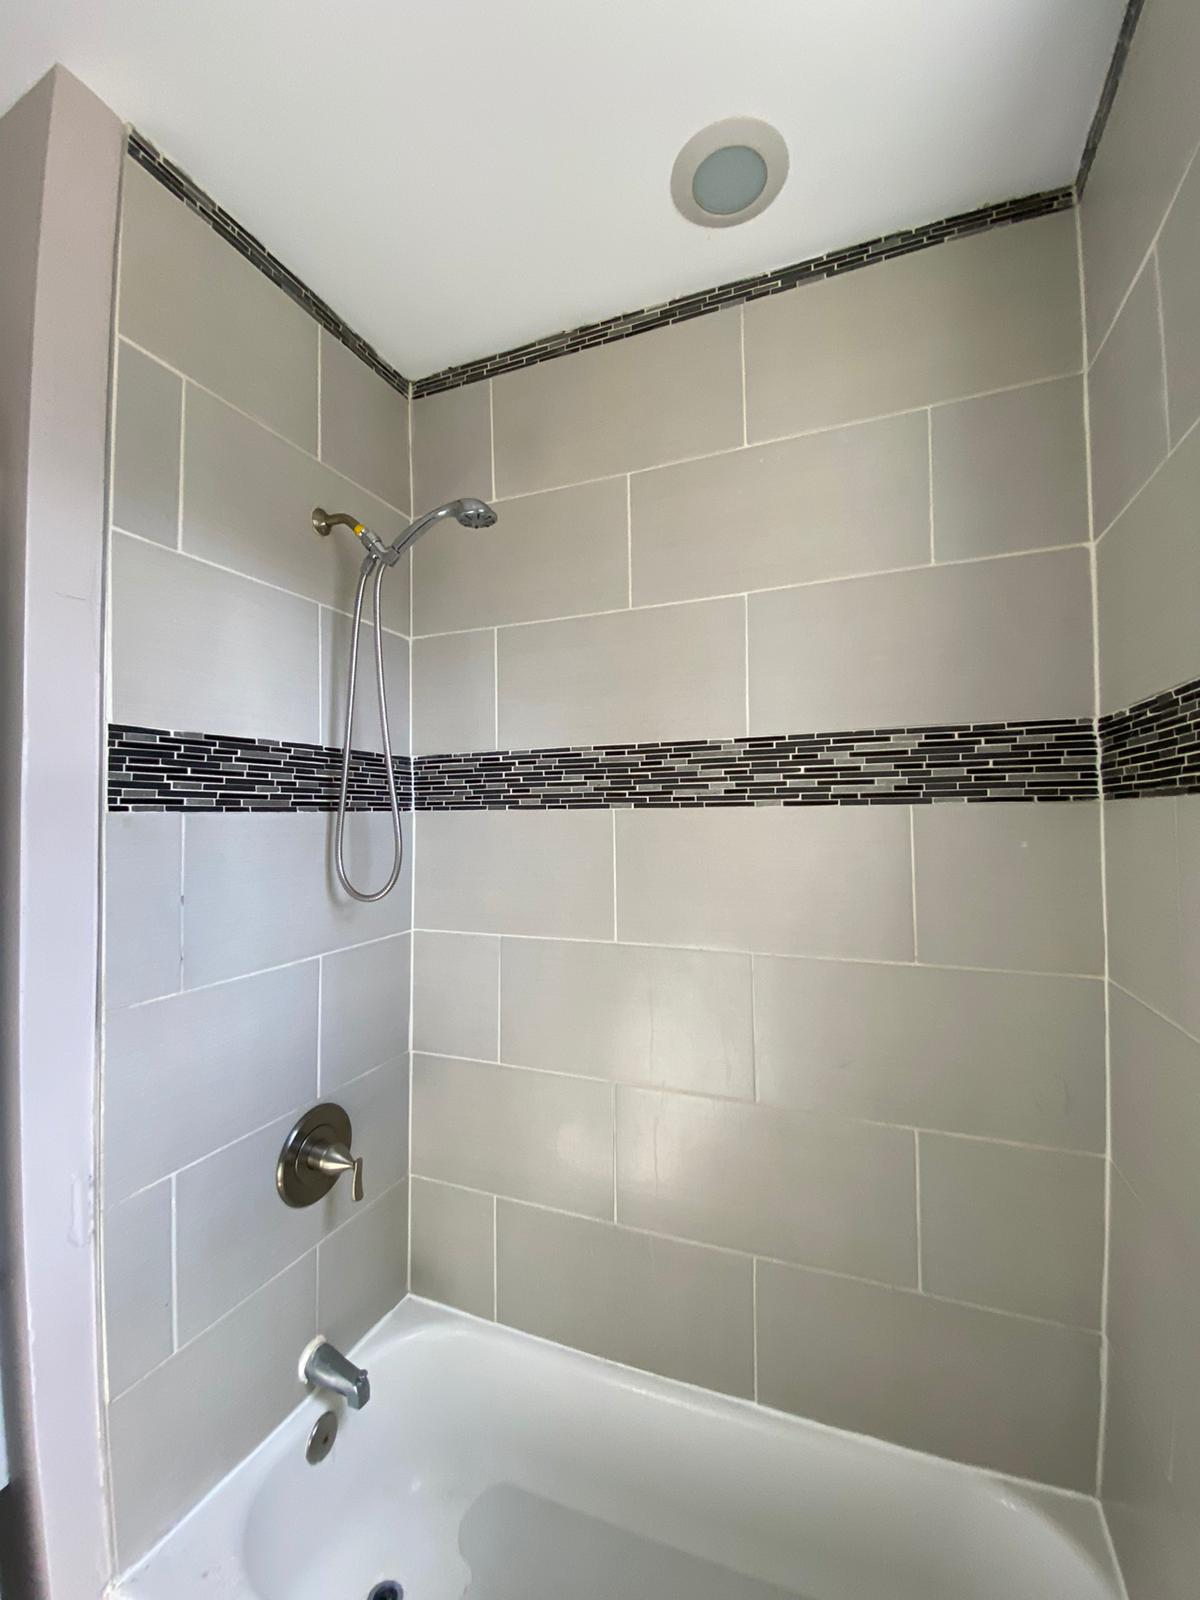 Tiled Bathtub with Spotlight at 534 Beaumont Ave Baltimore